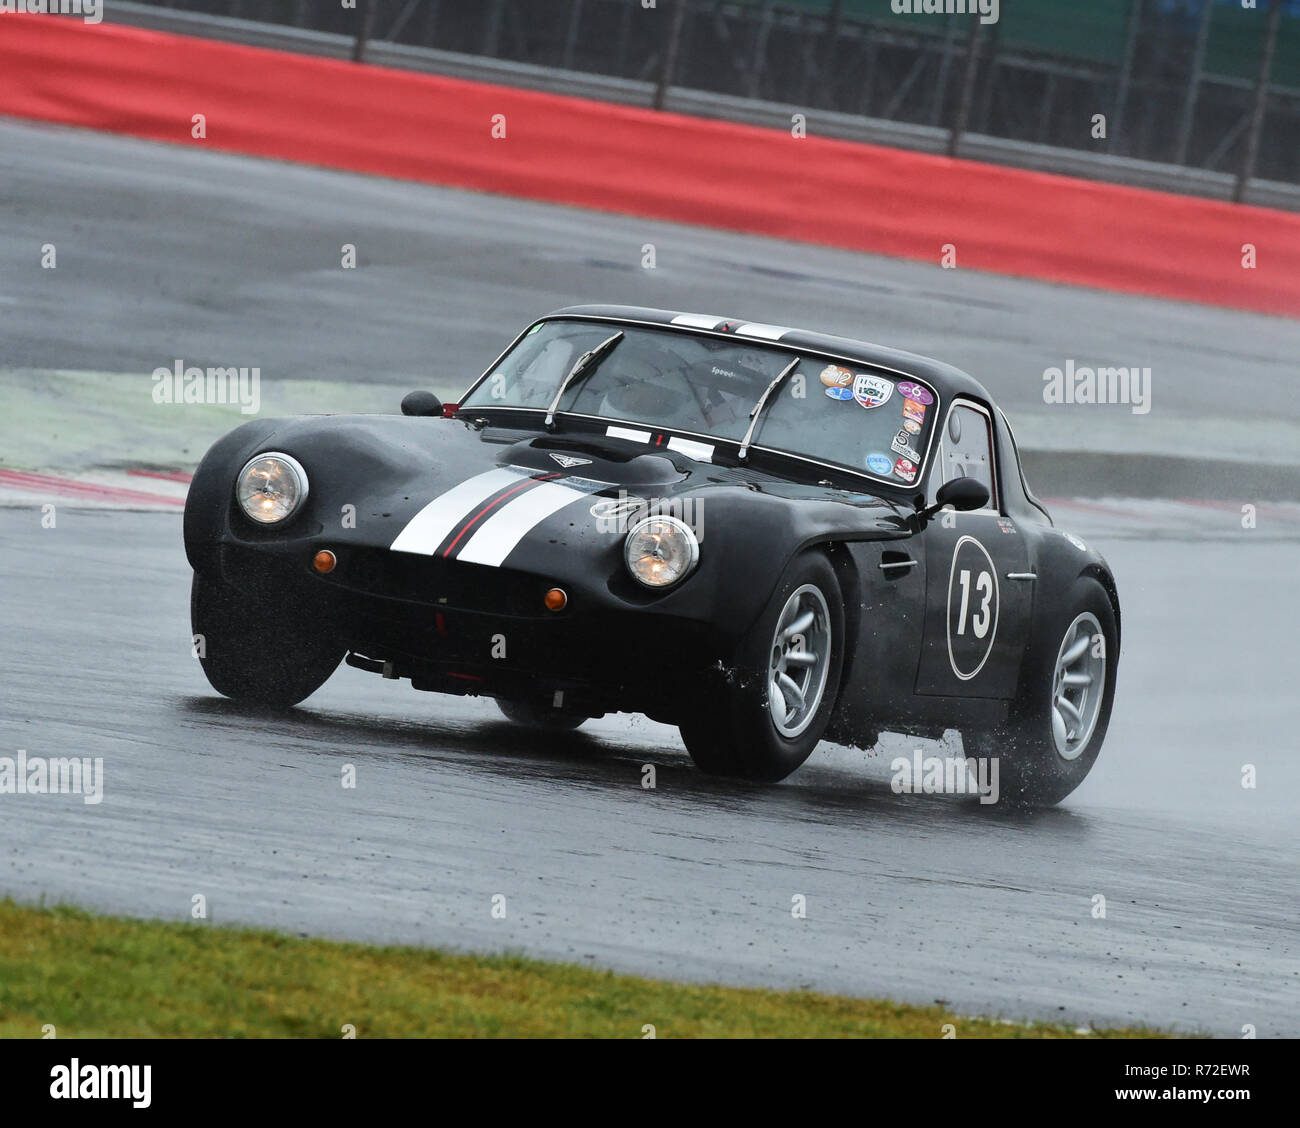 Peter Dod, Nathan Dod, TVR Griffith, Guards Trophy, Silverstone Classic 2015, Chris McEvoy, circuit racing, cjm-photography, classic cars, Classic Rac - Stock Image